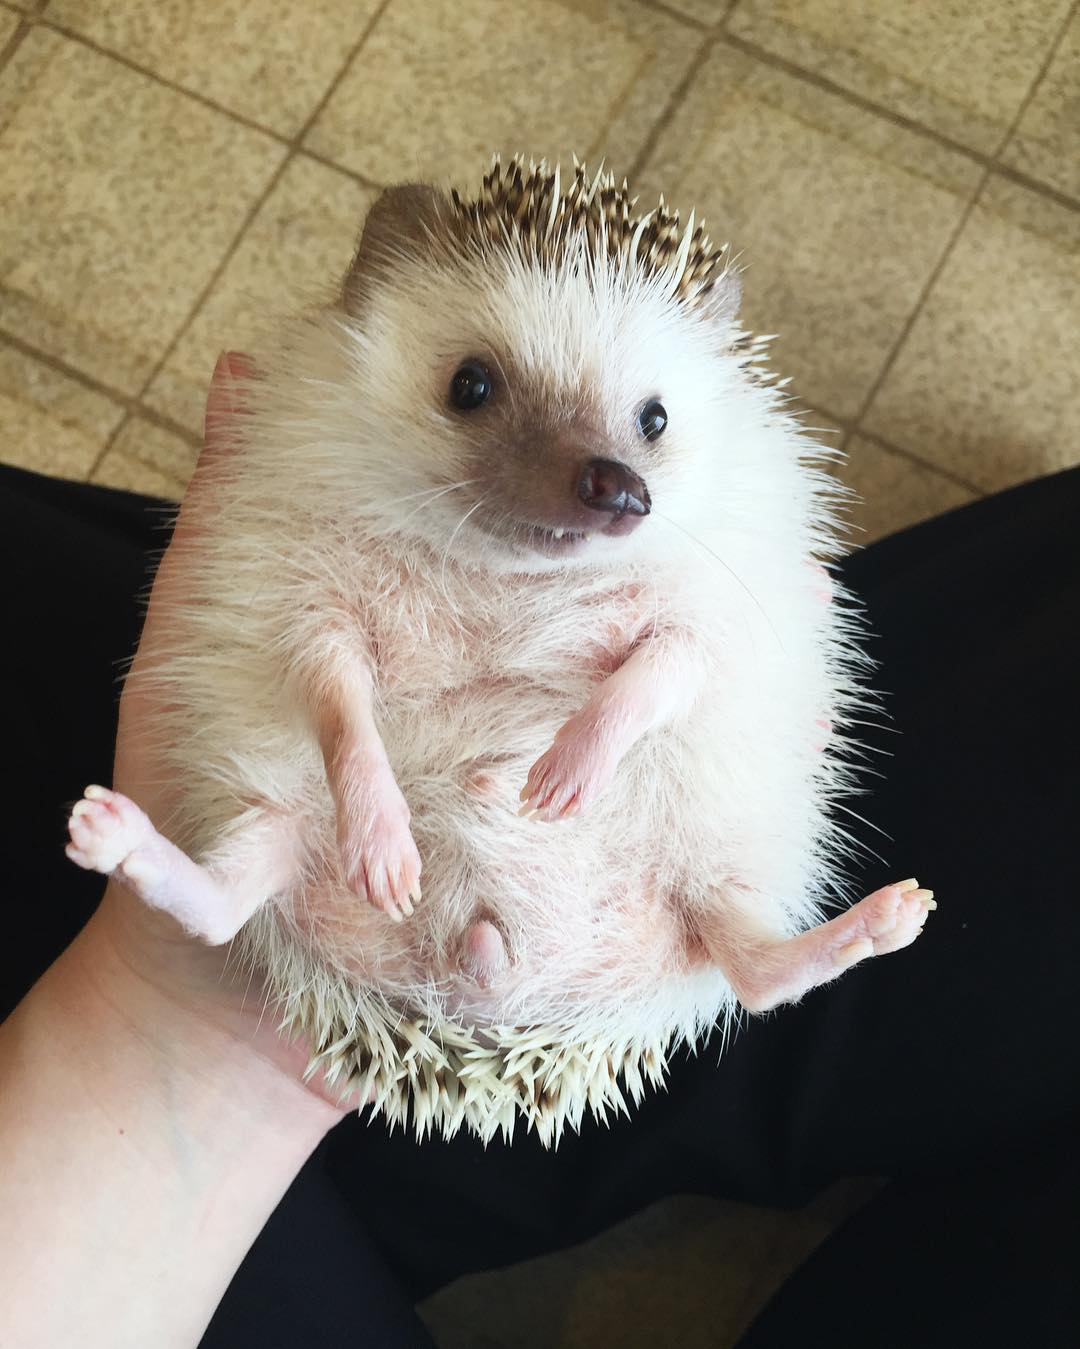 vampire-hedgehog-fangs-hodge-huffington-2